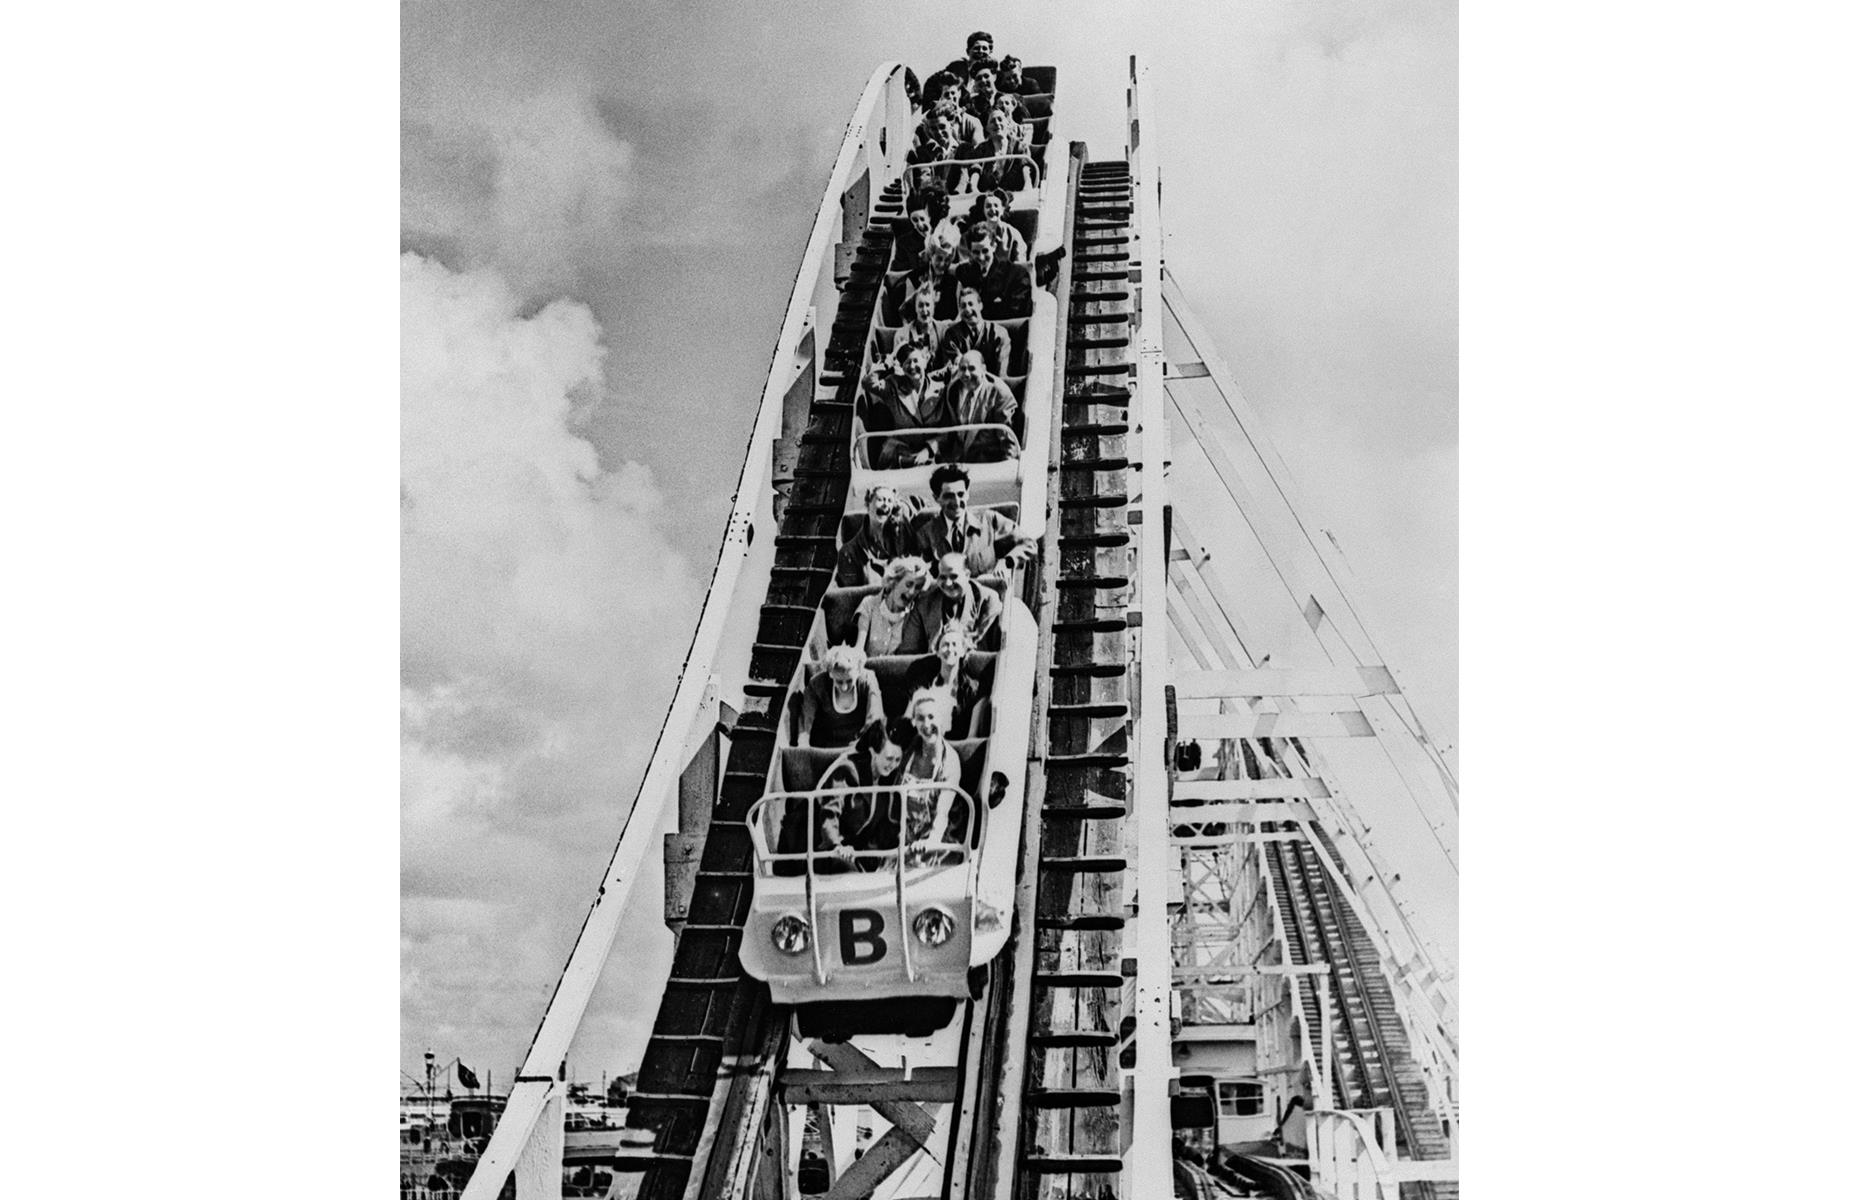 Slide 5 of 35: The tourist attraction is still going strong, and the Big Dipper, a wooden coaster first installed in the 1920s, is one ride that has become synonymous with the park. Here visitors in the 1950s brave one of the Dipper's epic drops.